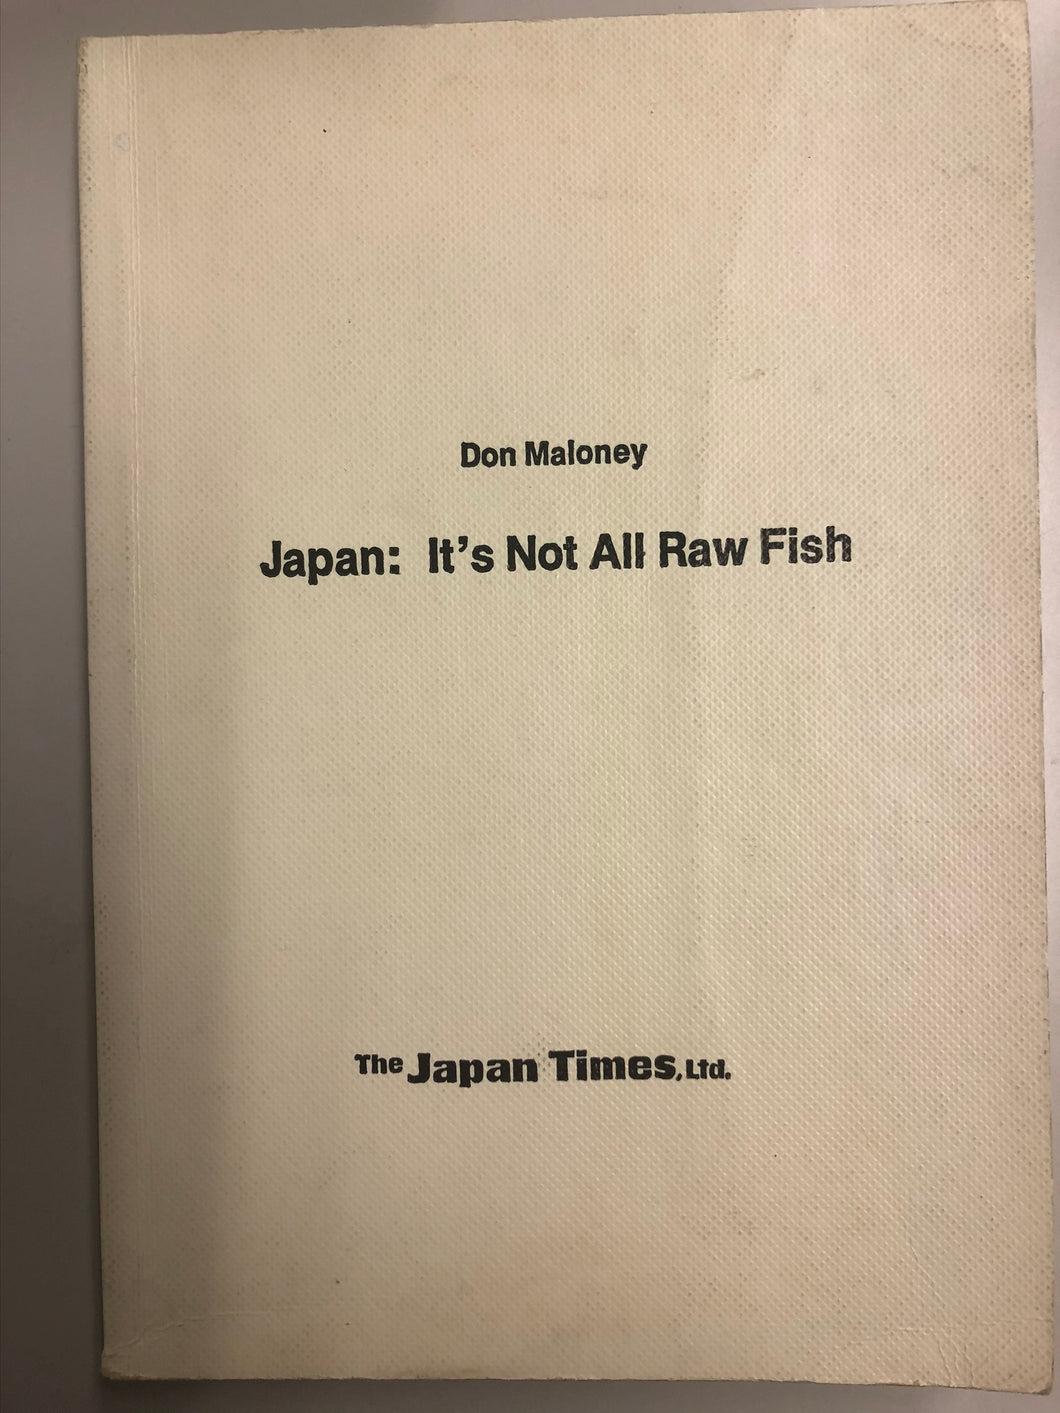 Japan It's Not All Raw Fish : Don Maloney